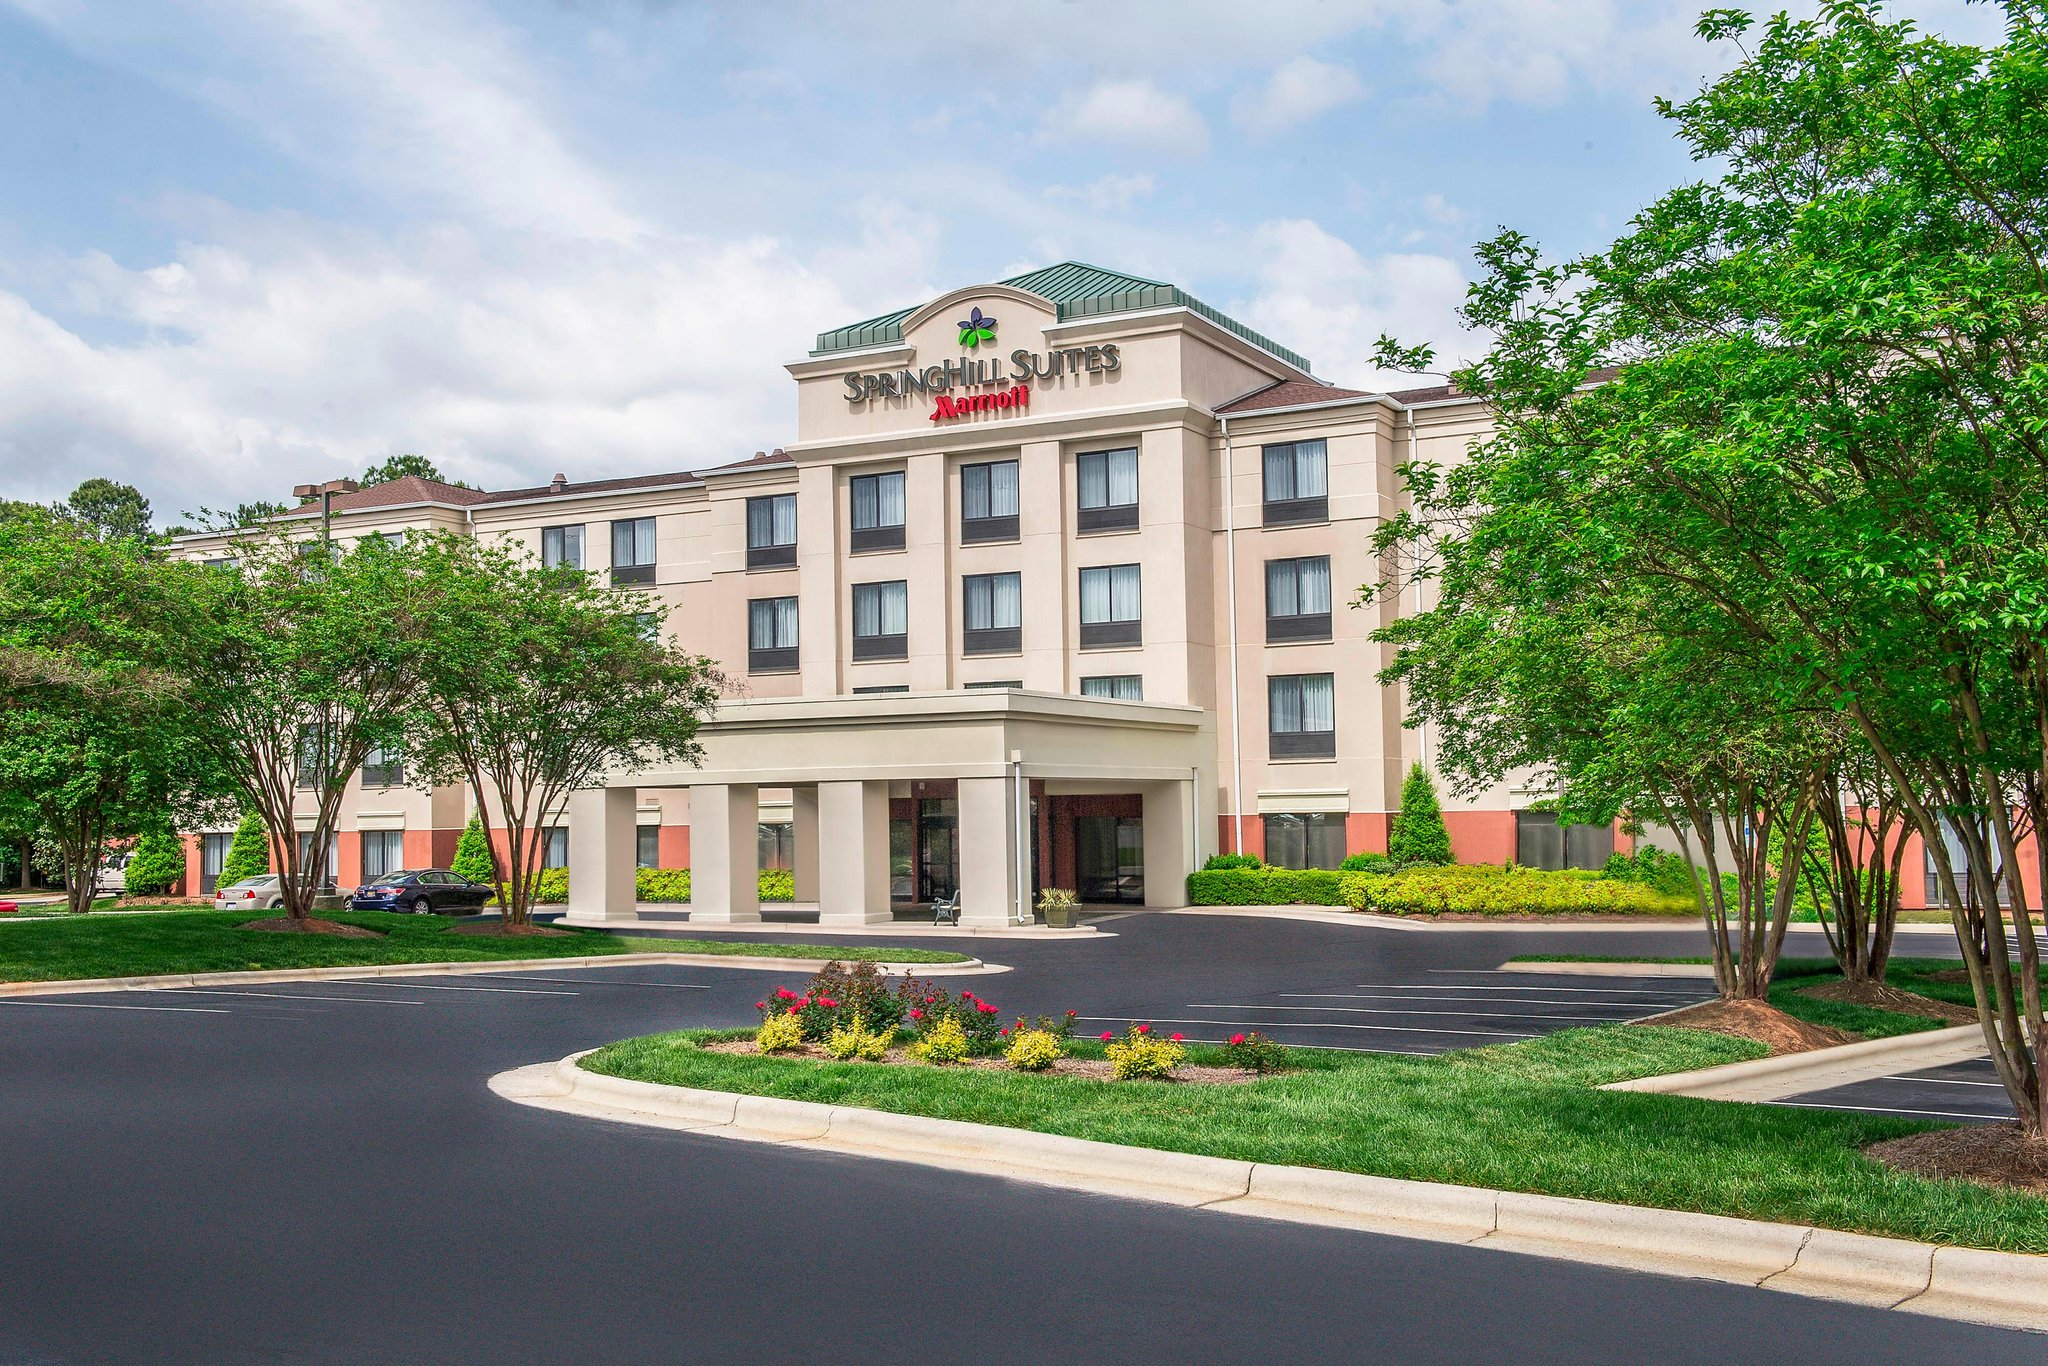 SpringHill Suites by Marriott Raleigh-Durham Airport Research Triangle Park